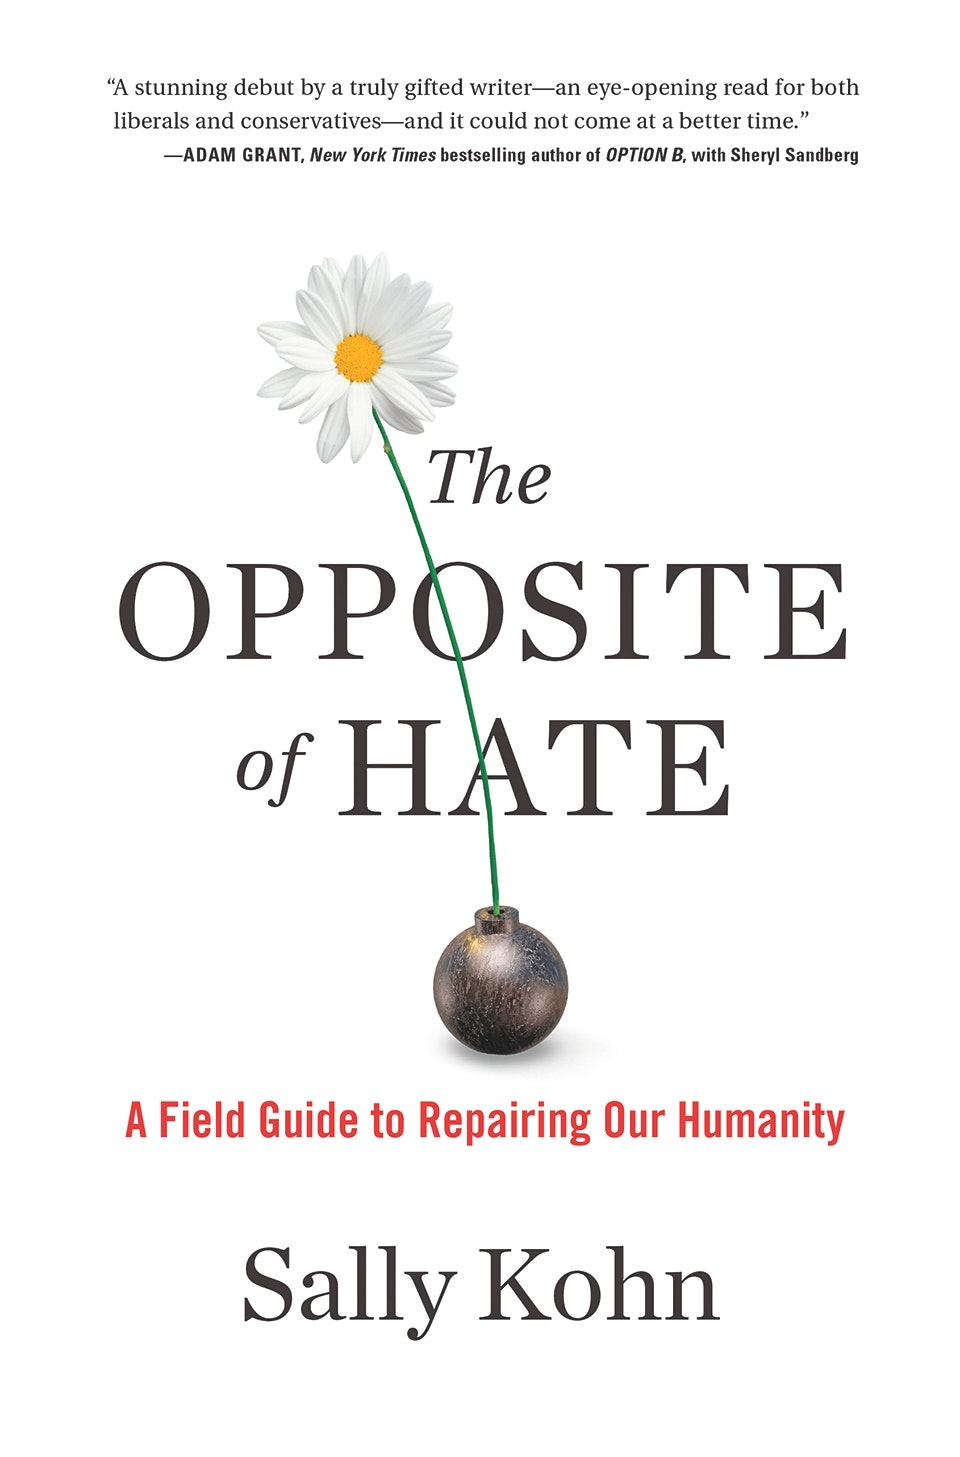 Sally Kohn explores how to eradicate hate in her debut book.